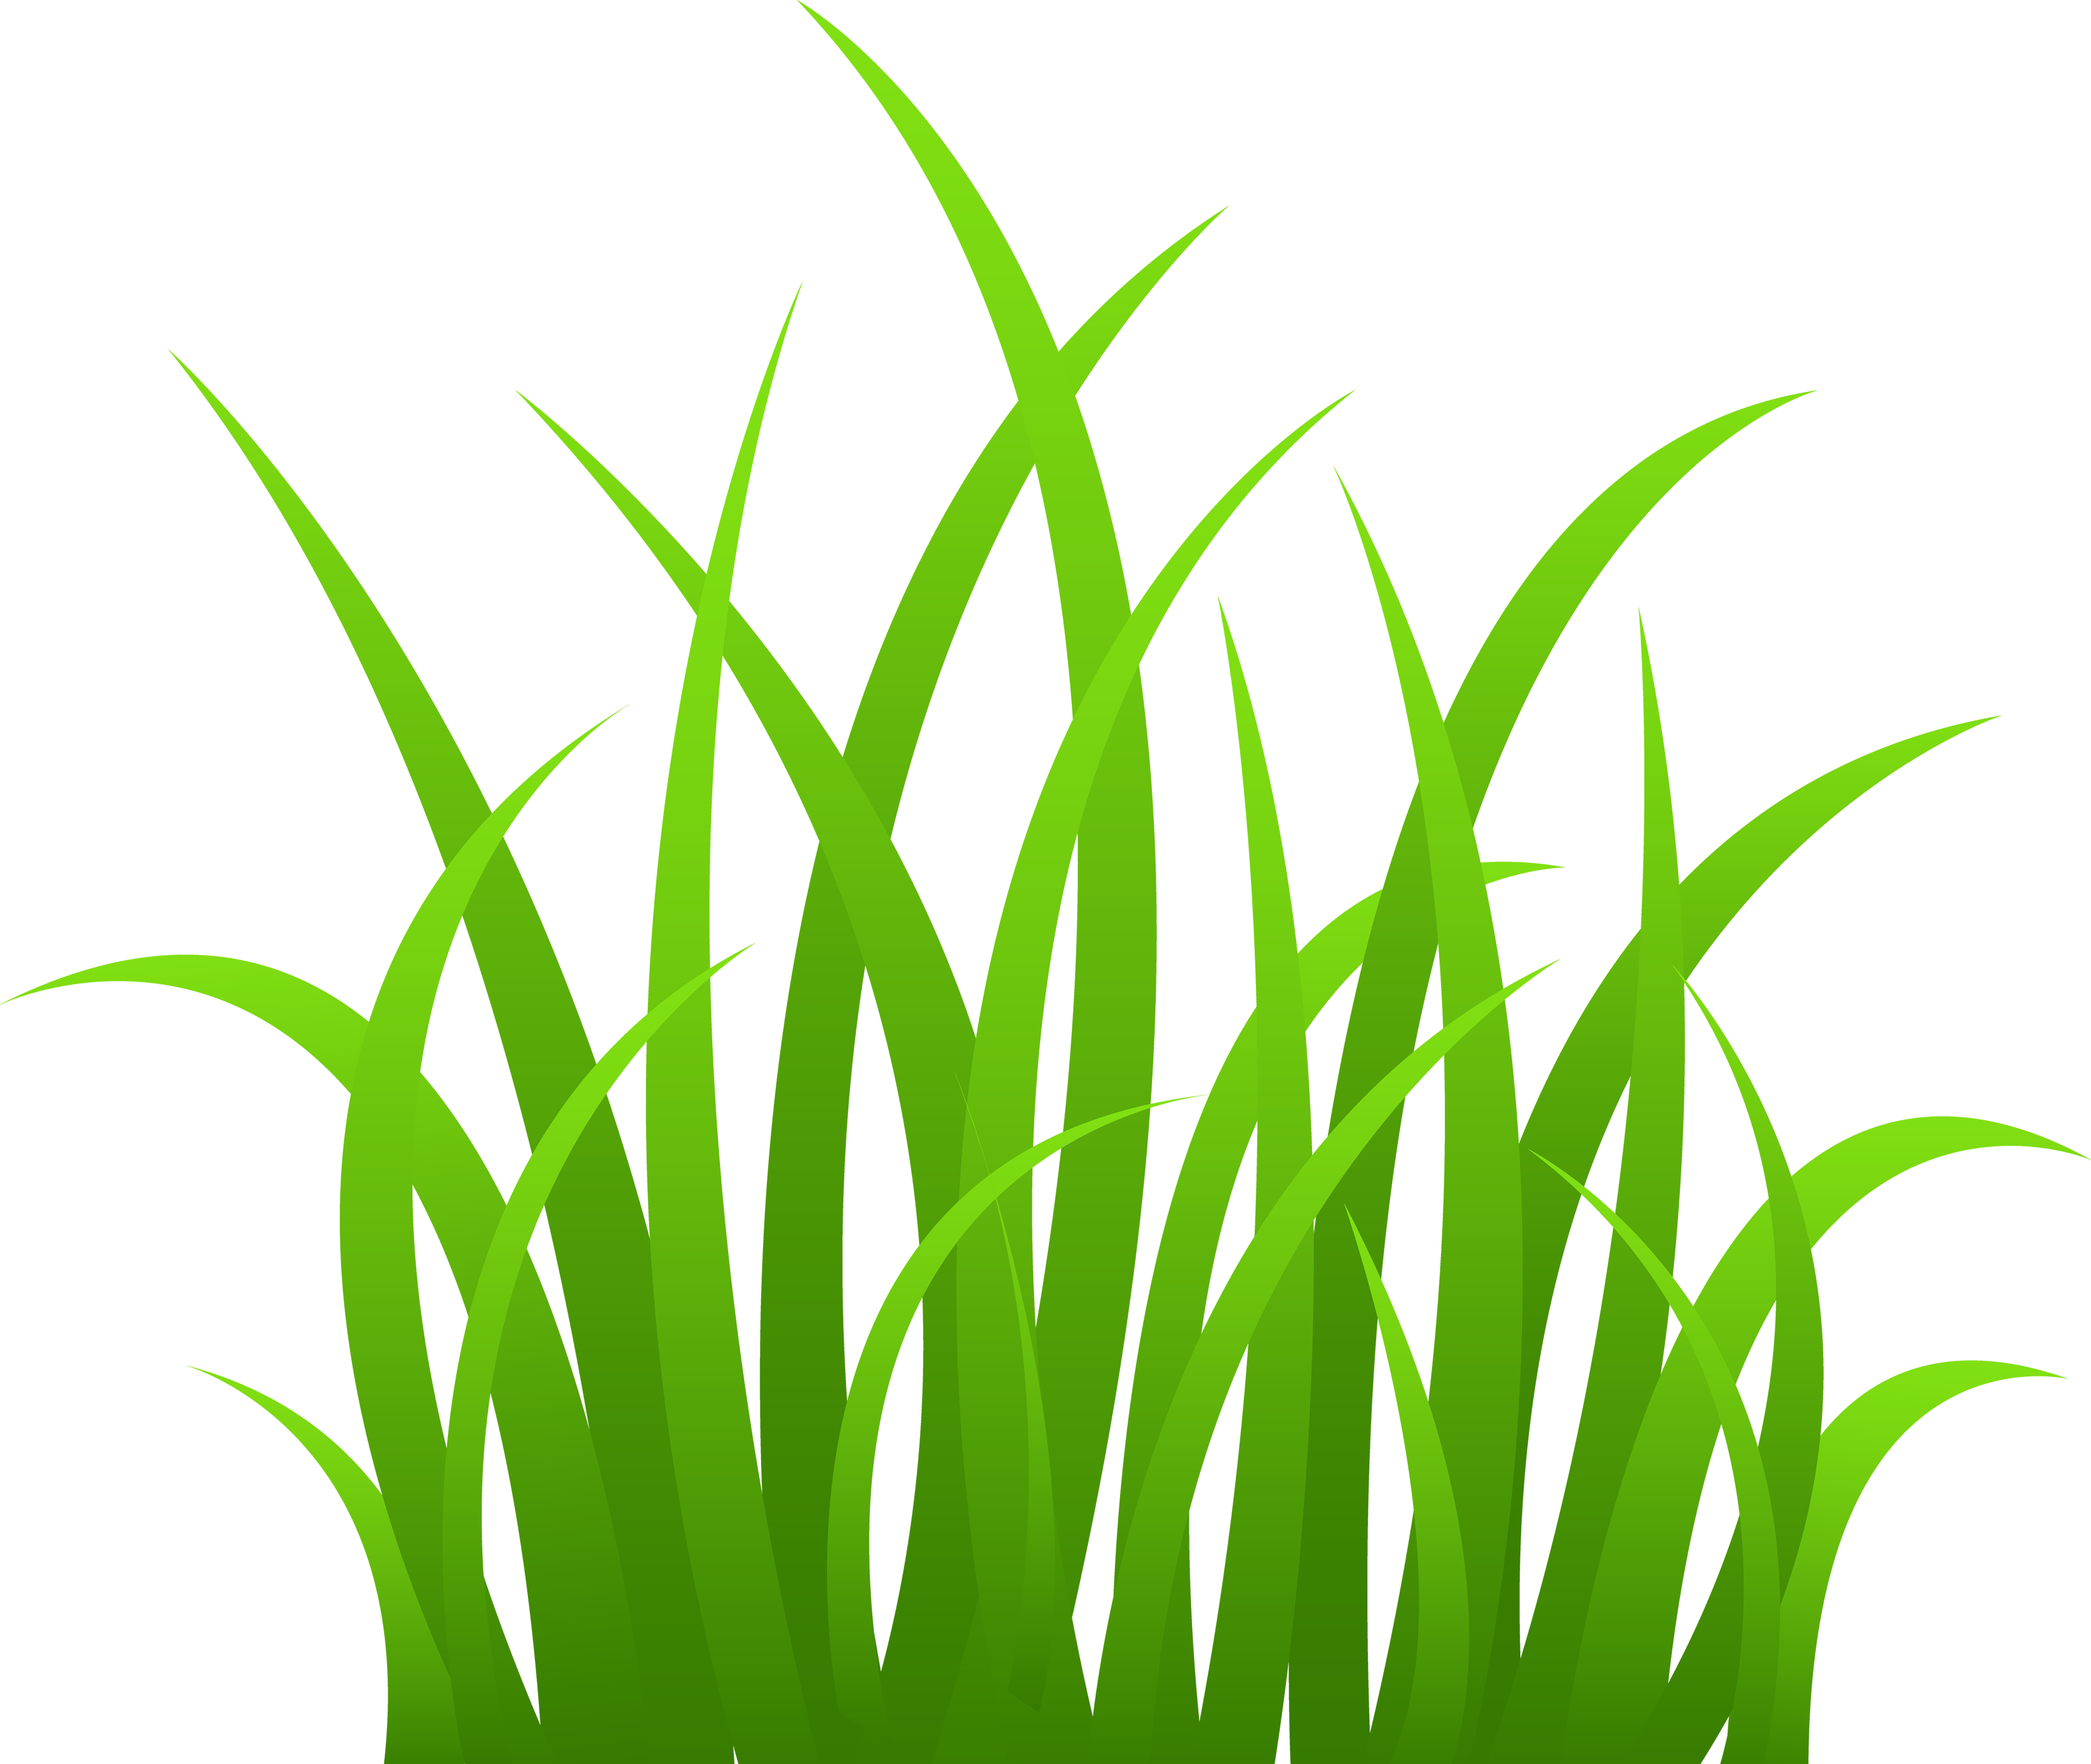 Dry Grass clipart #5, Download drawings